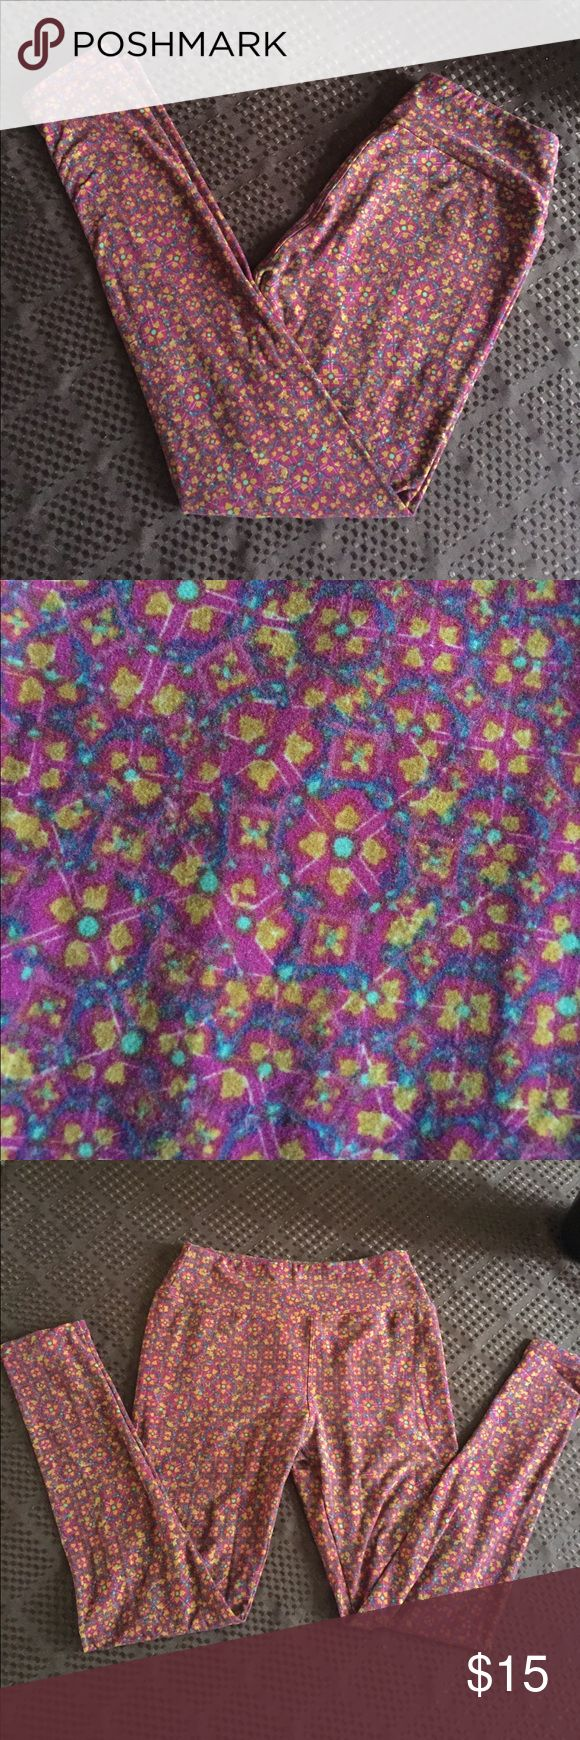 Lularoe Leggings Floral Print OS Great pair of Lularoe leggings in a reddish floral print. Good condition. Would be great with boots and a sweater for fall. LuLaRoe Pants Leggings